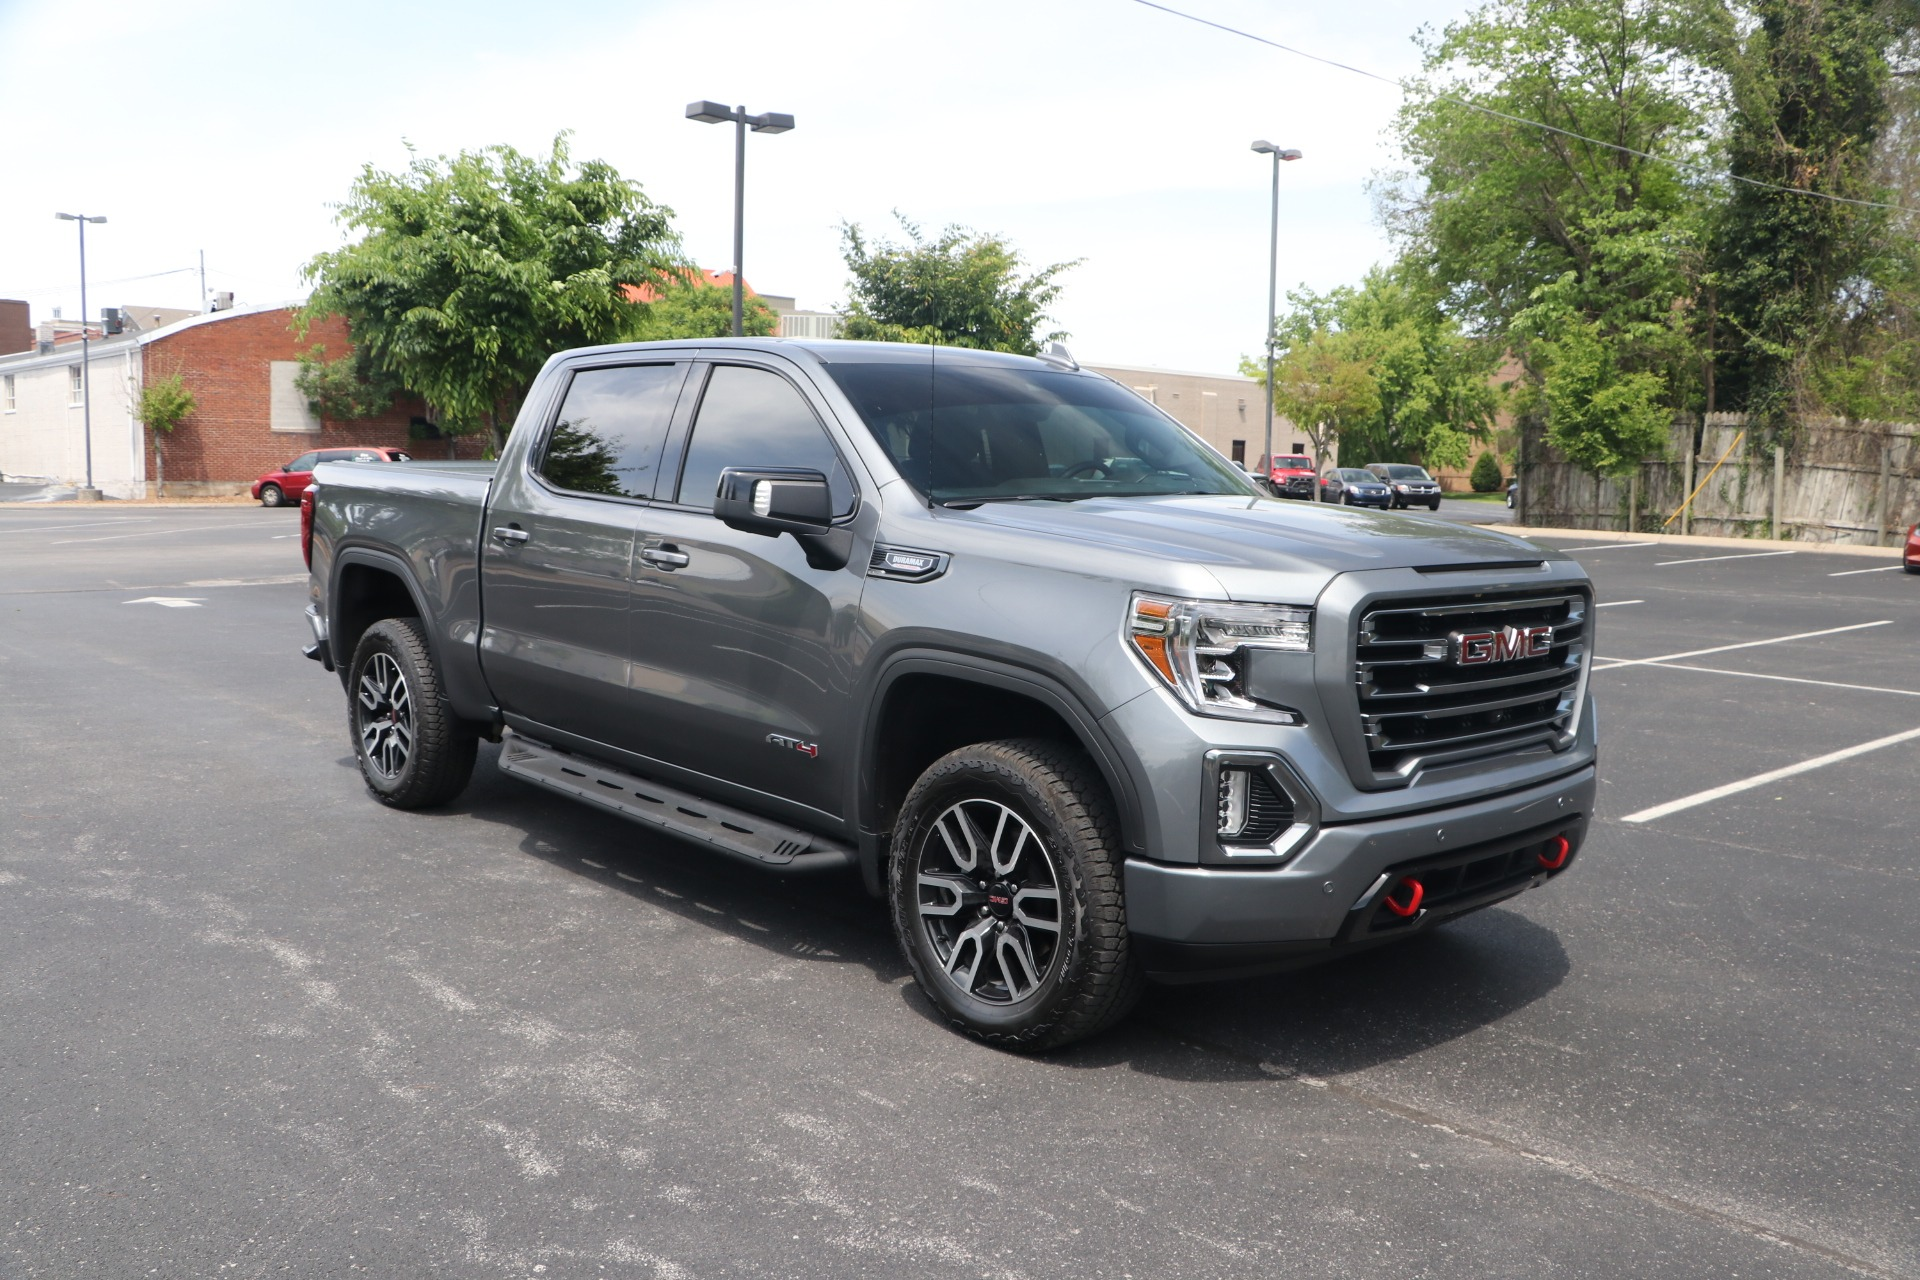 Used 2020 GMC Sierra 1500 AT4 PREMIUM DIESEL 4WD CREW CAB W/NAV for sale Sold at Auto Collection in Murfreesboro TN 37130 1